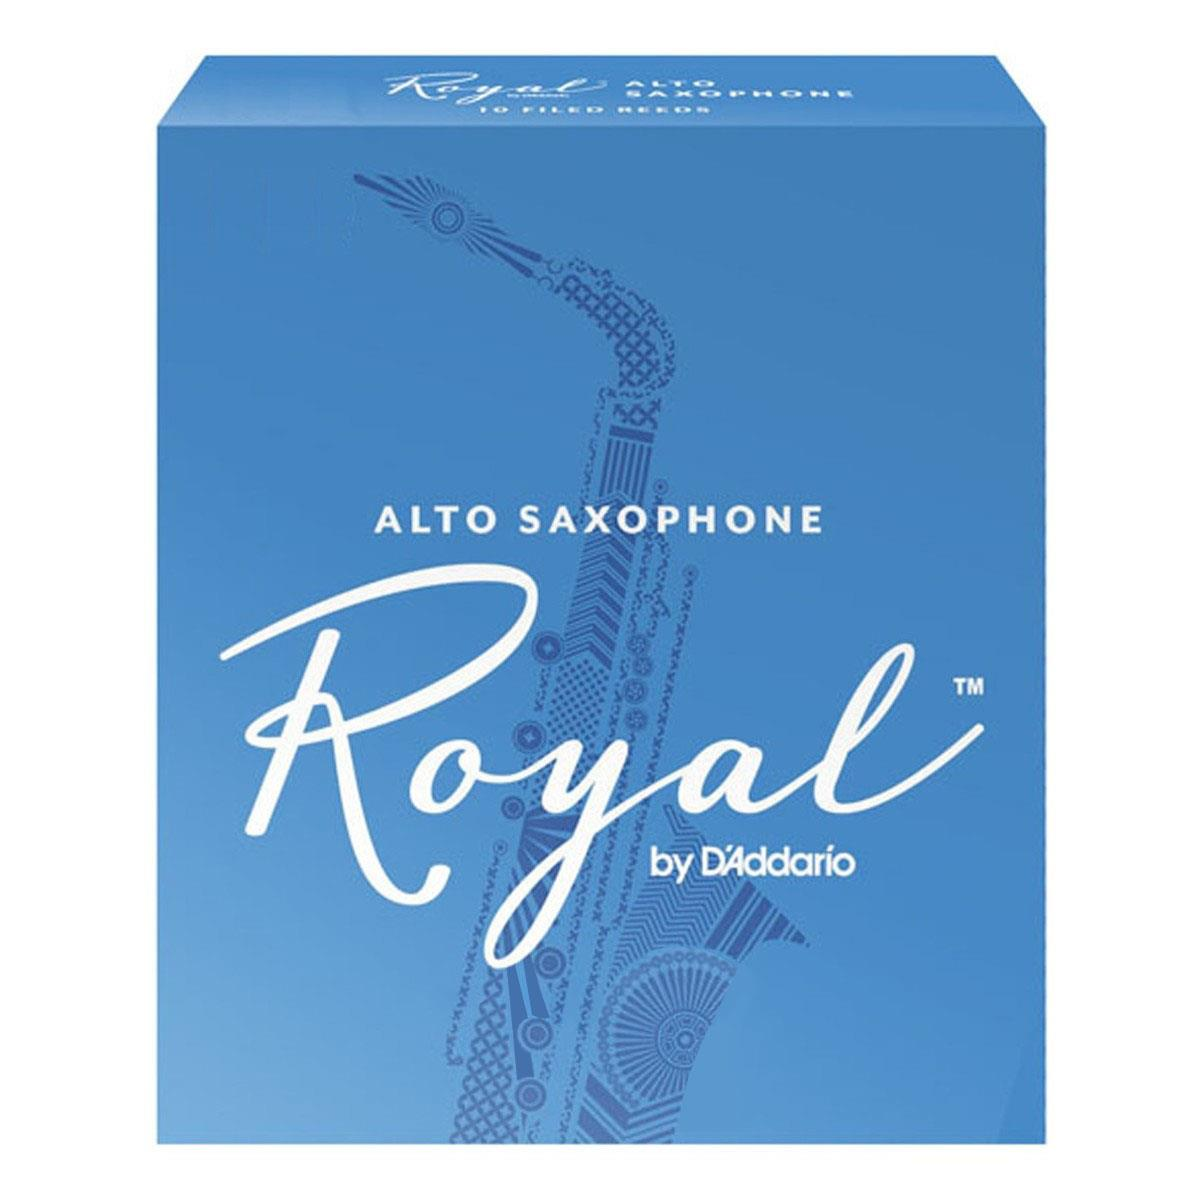 Image of D'Addario Woodwind Royal RJB0325 Alto Sax Reeds Strength 2.5 3-pack 0046716575975